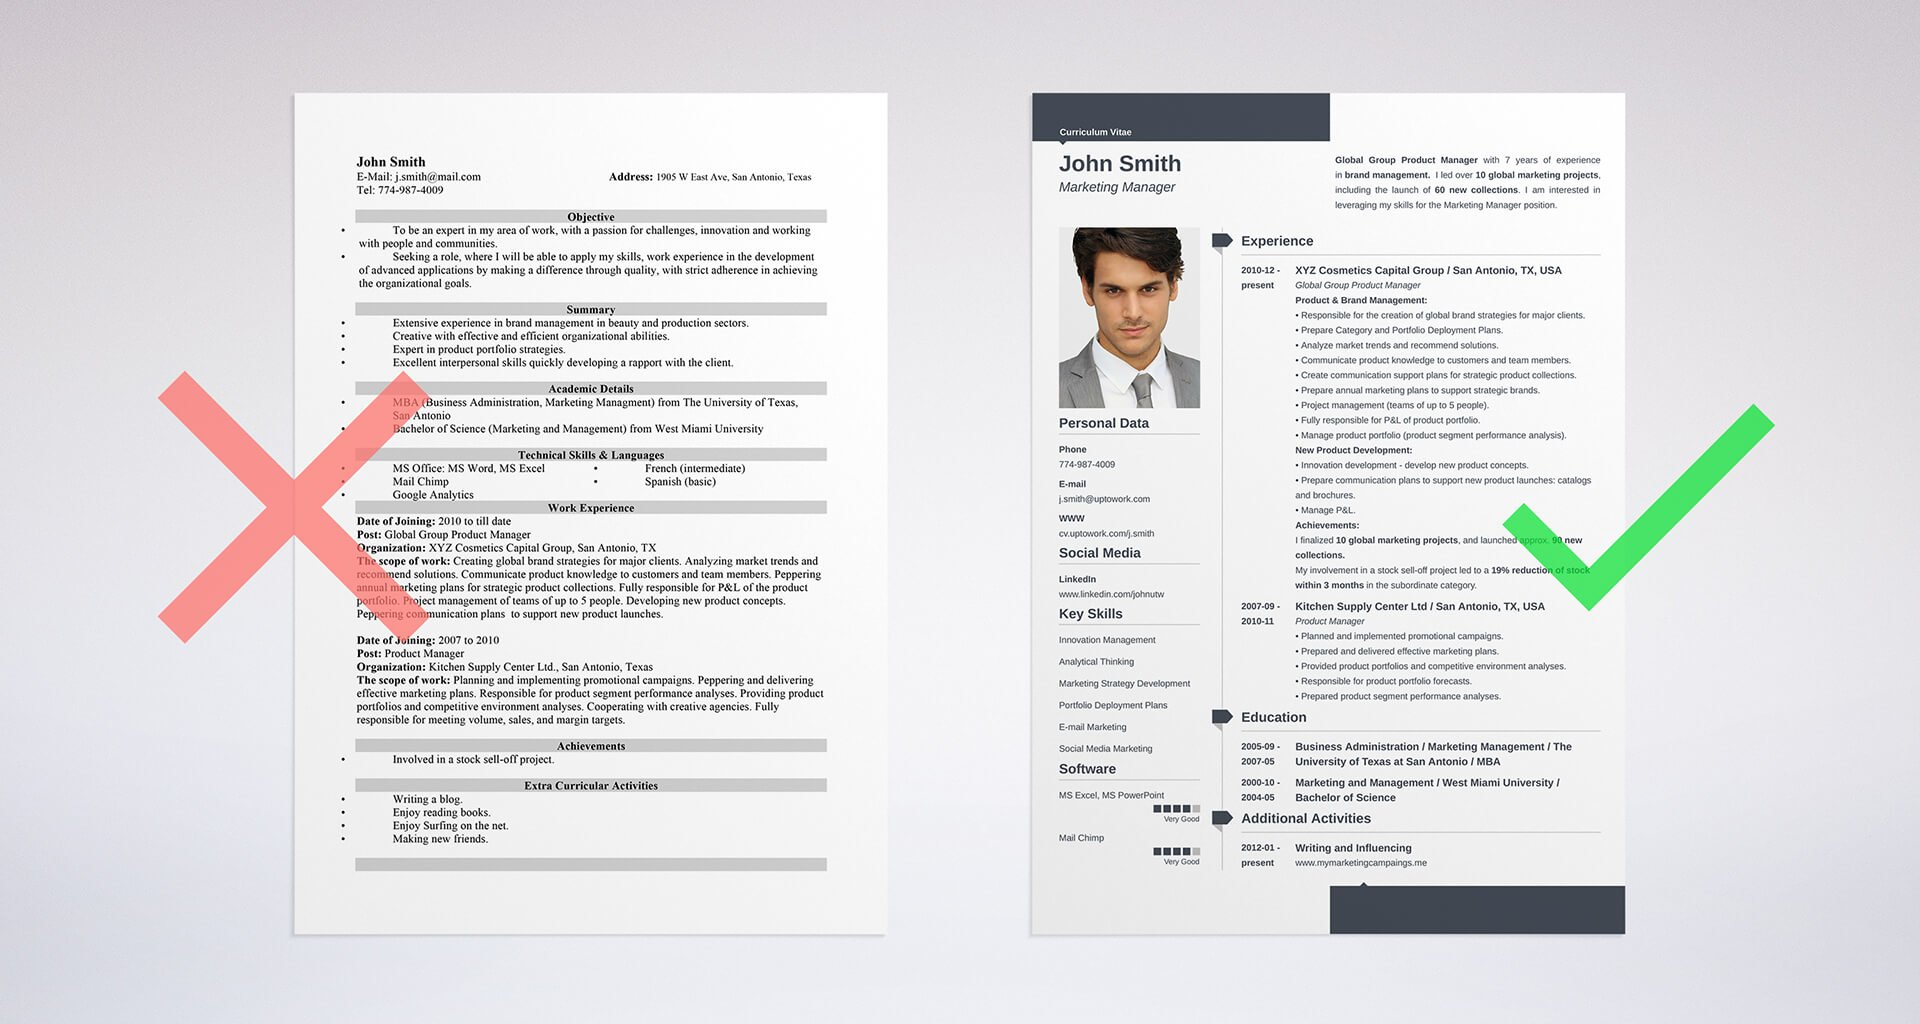 skills for resume best of examples all jobs you should put on your dental patient Resume Skills You Should Put On Your Resume